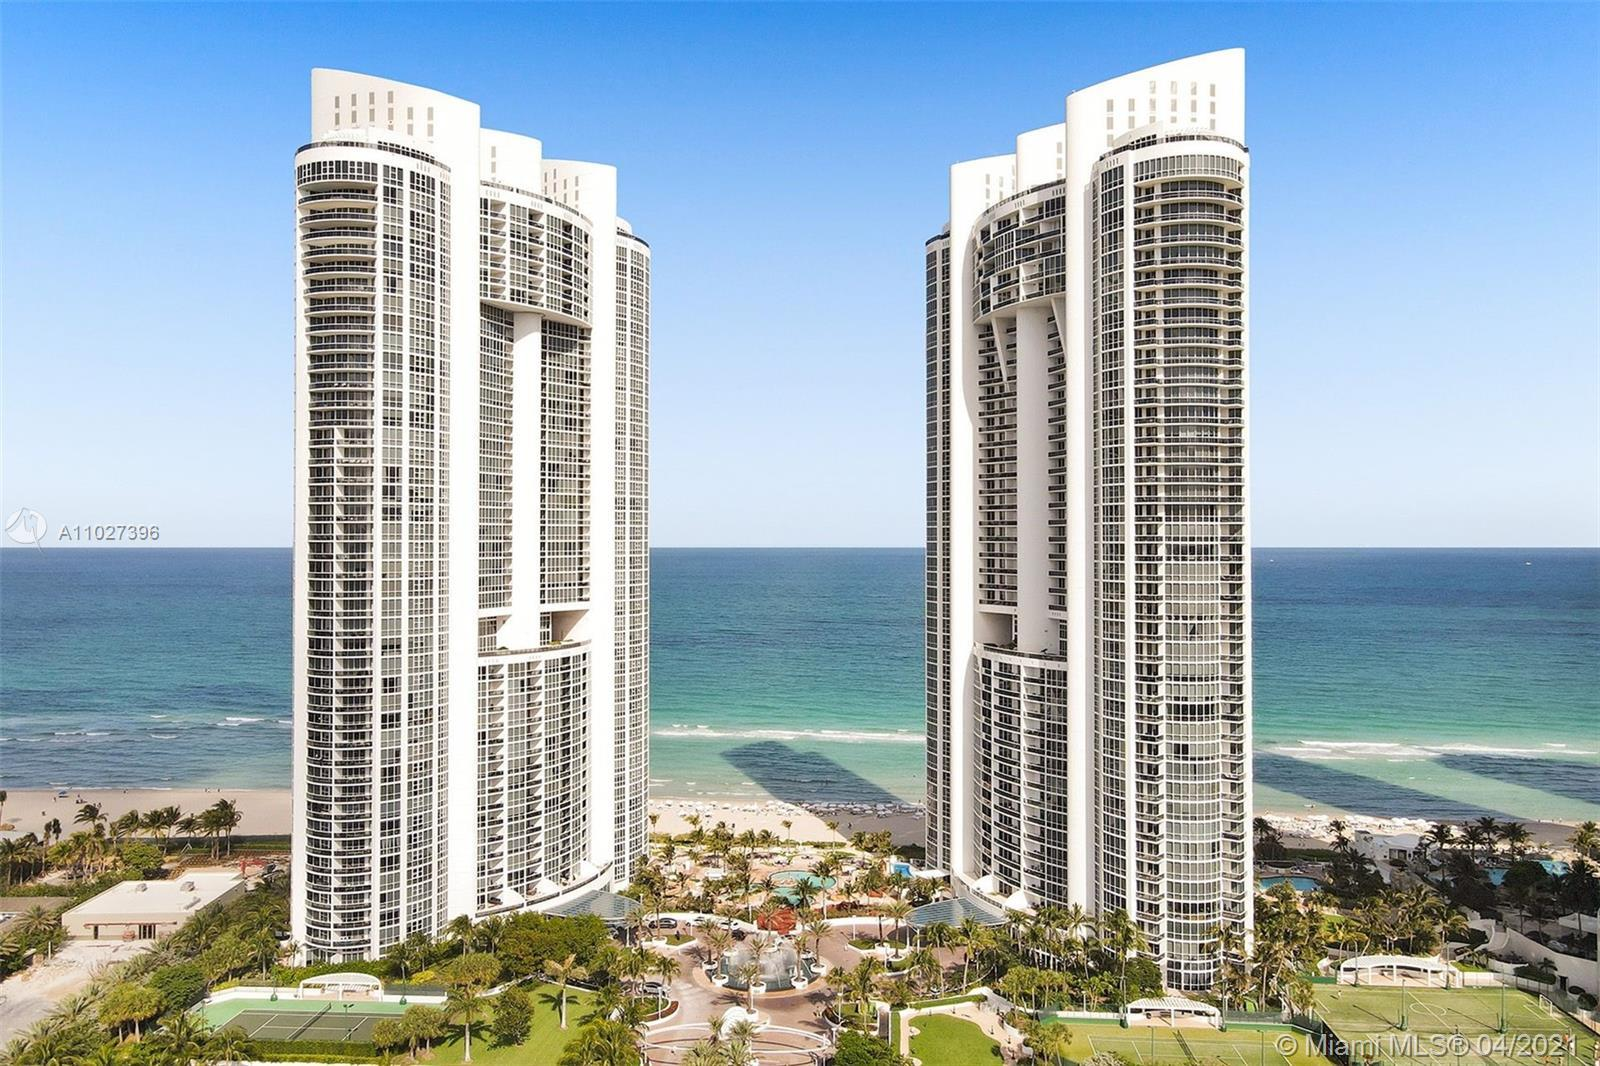 Luxury at its finest in this amazing oceanfront condo at the Trump Palace.  This Sunny Isles Beach G